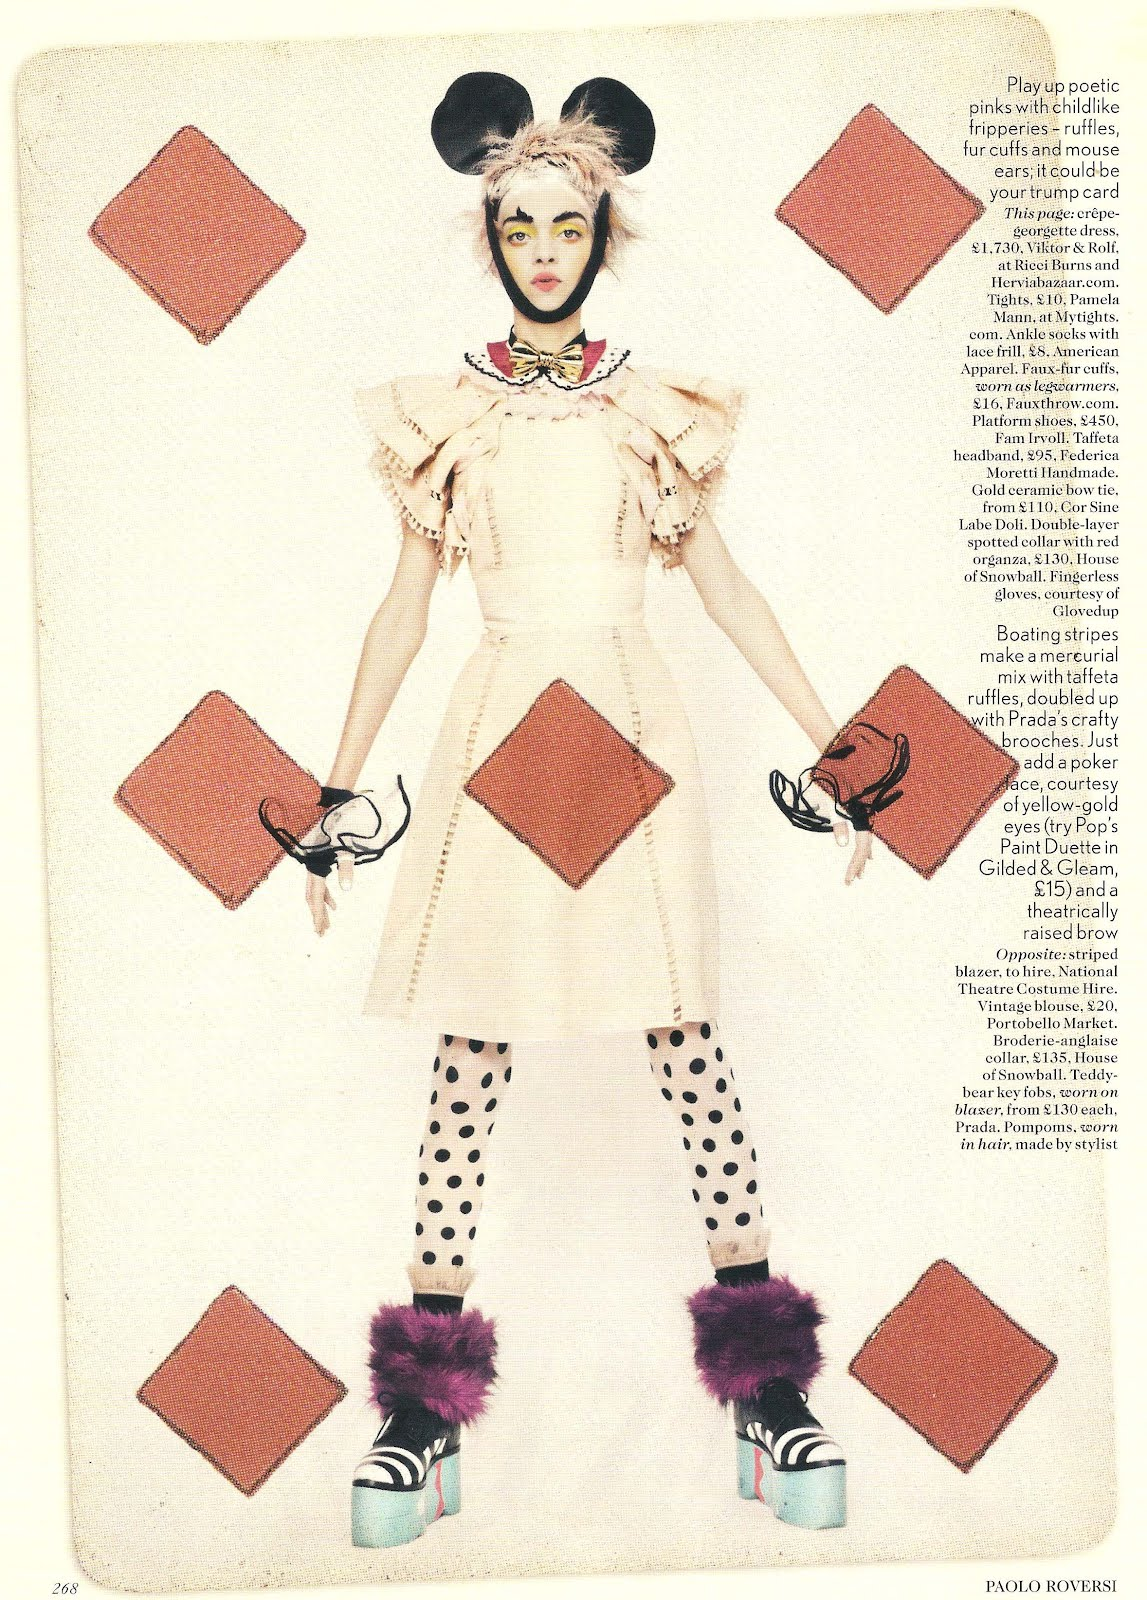 House of Snowball's spread in April 2012 UK Vogue photo 4